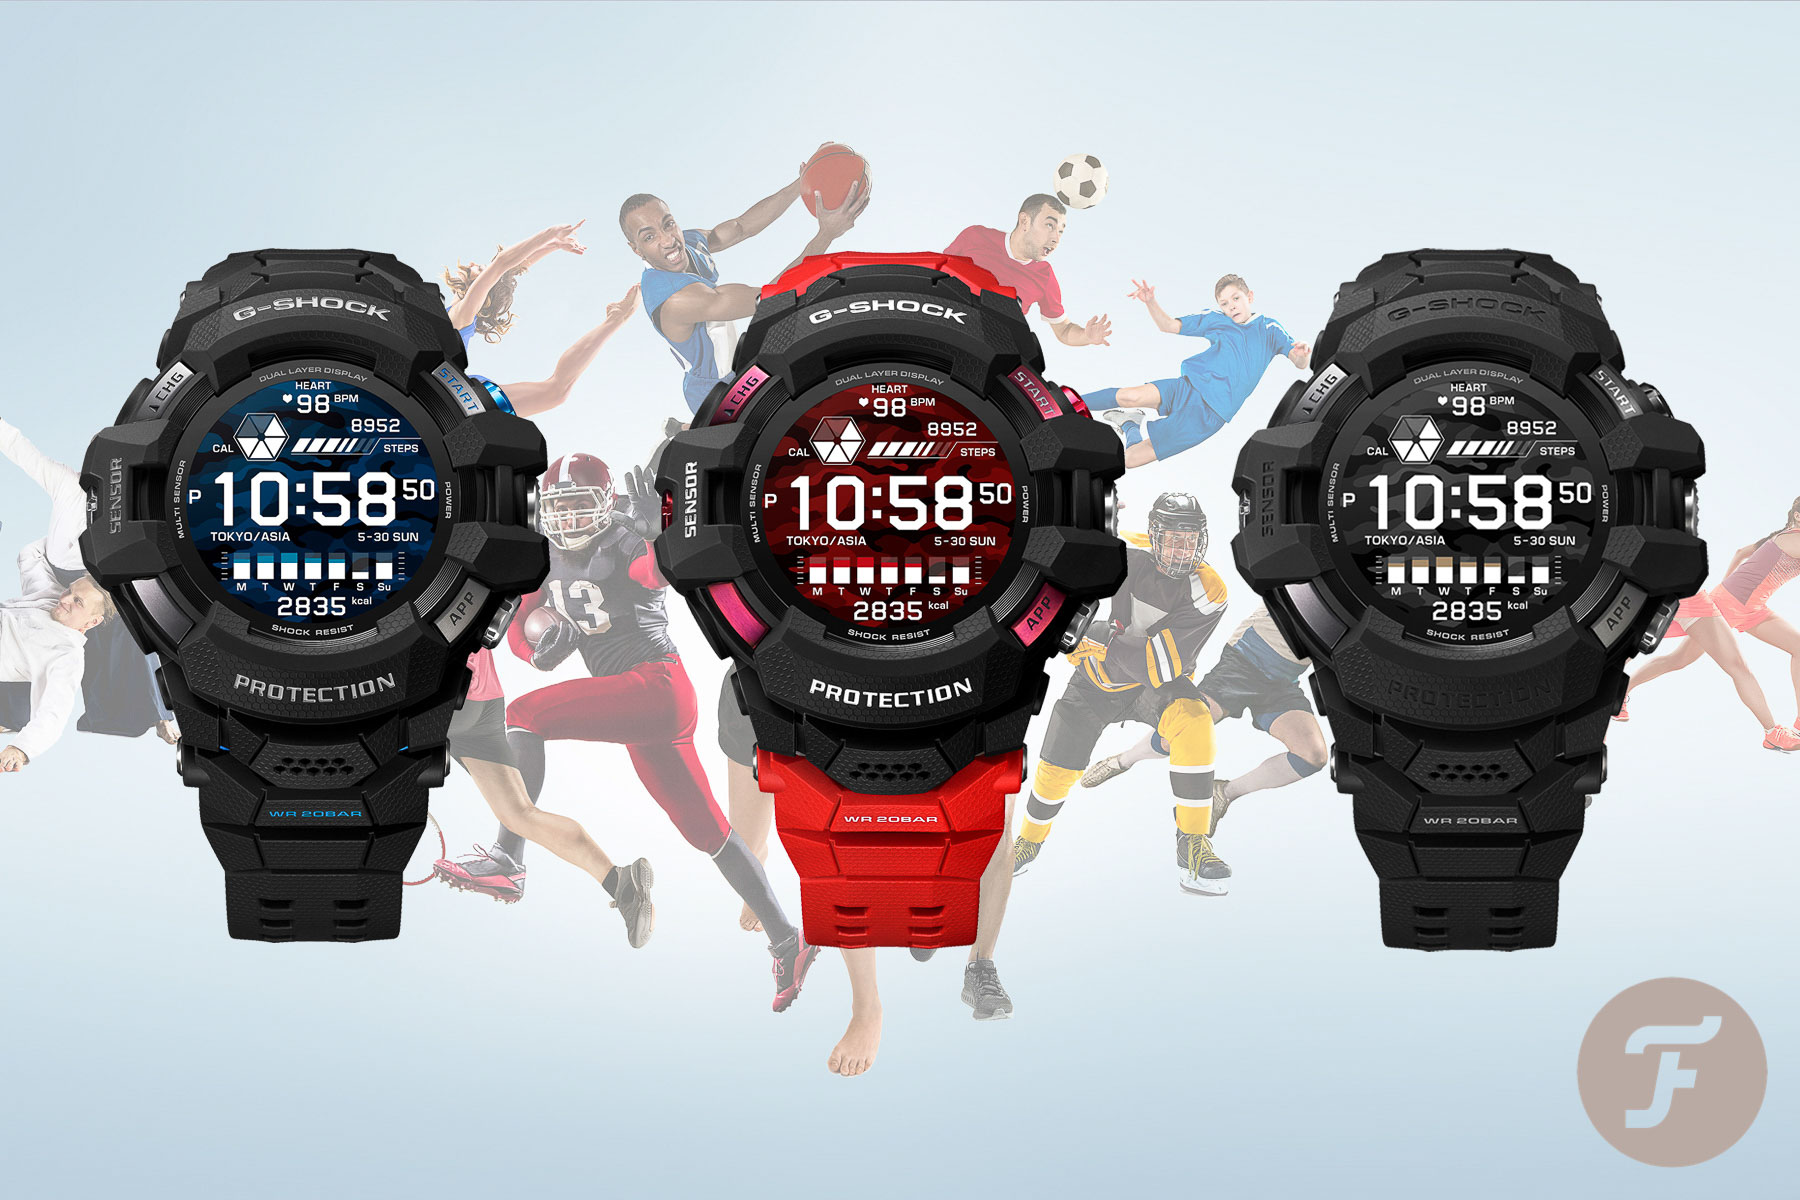 Casio to release their first G-Shock smartwatch, the GSW-H1000